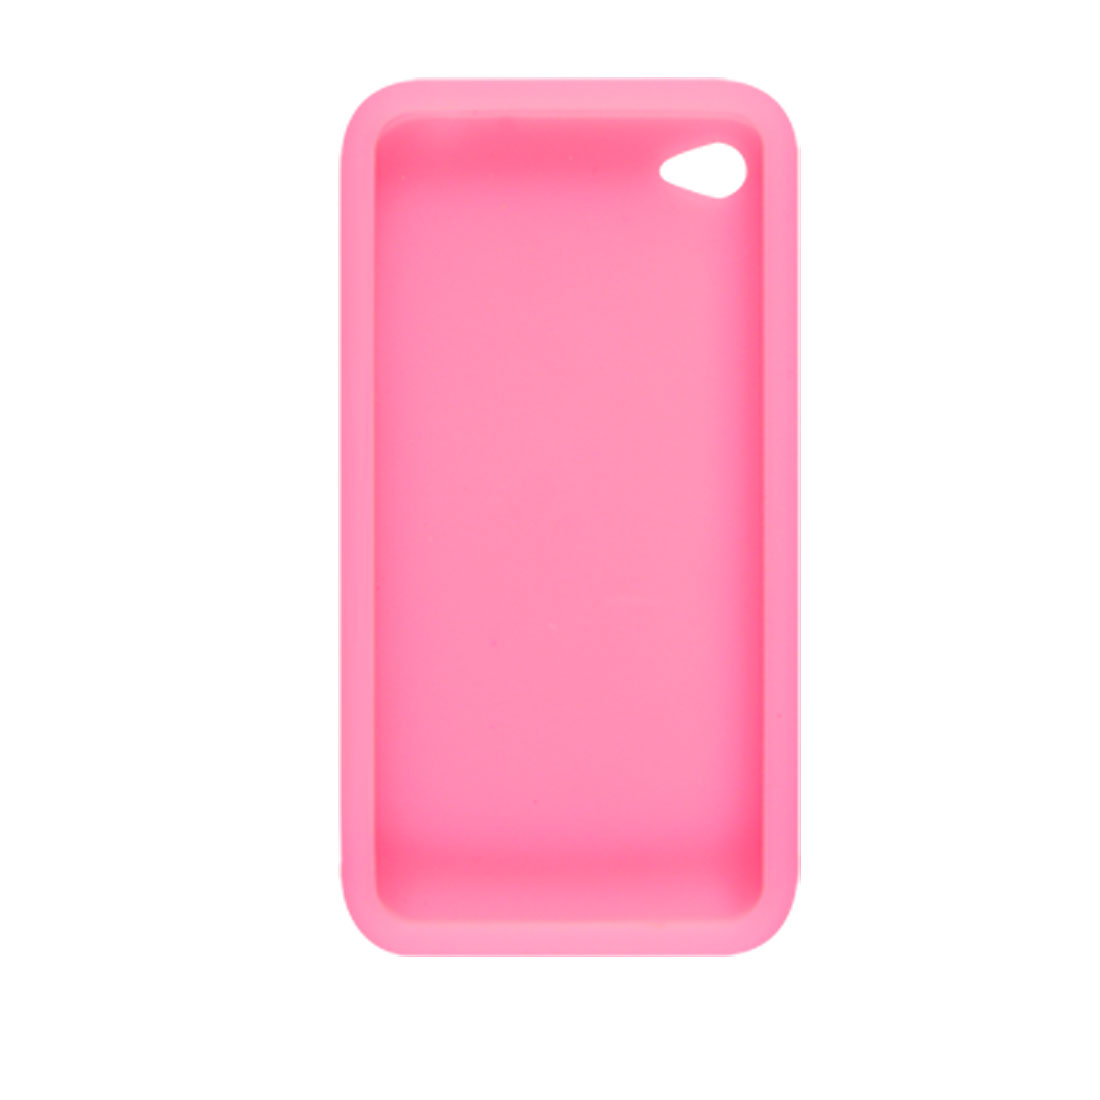 Phone Pink Silicone Skin Back Case Cover for iPhone 4 4G